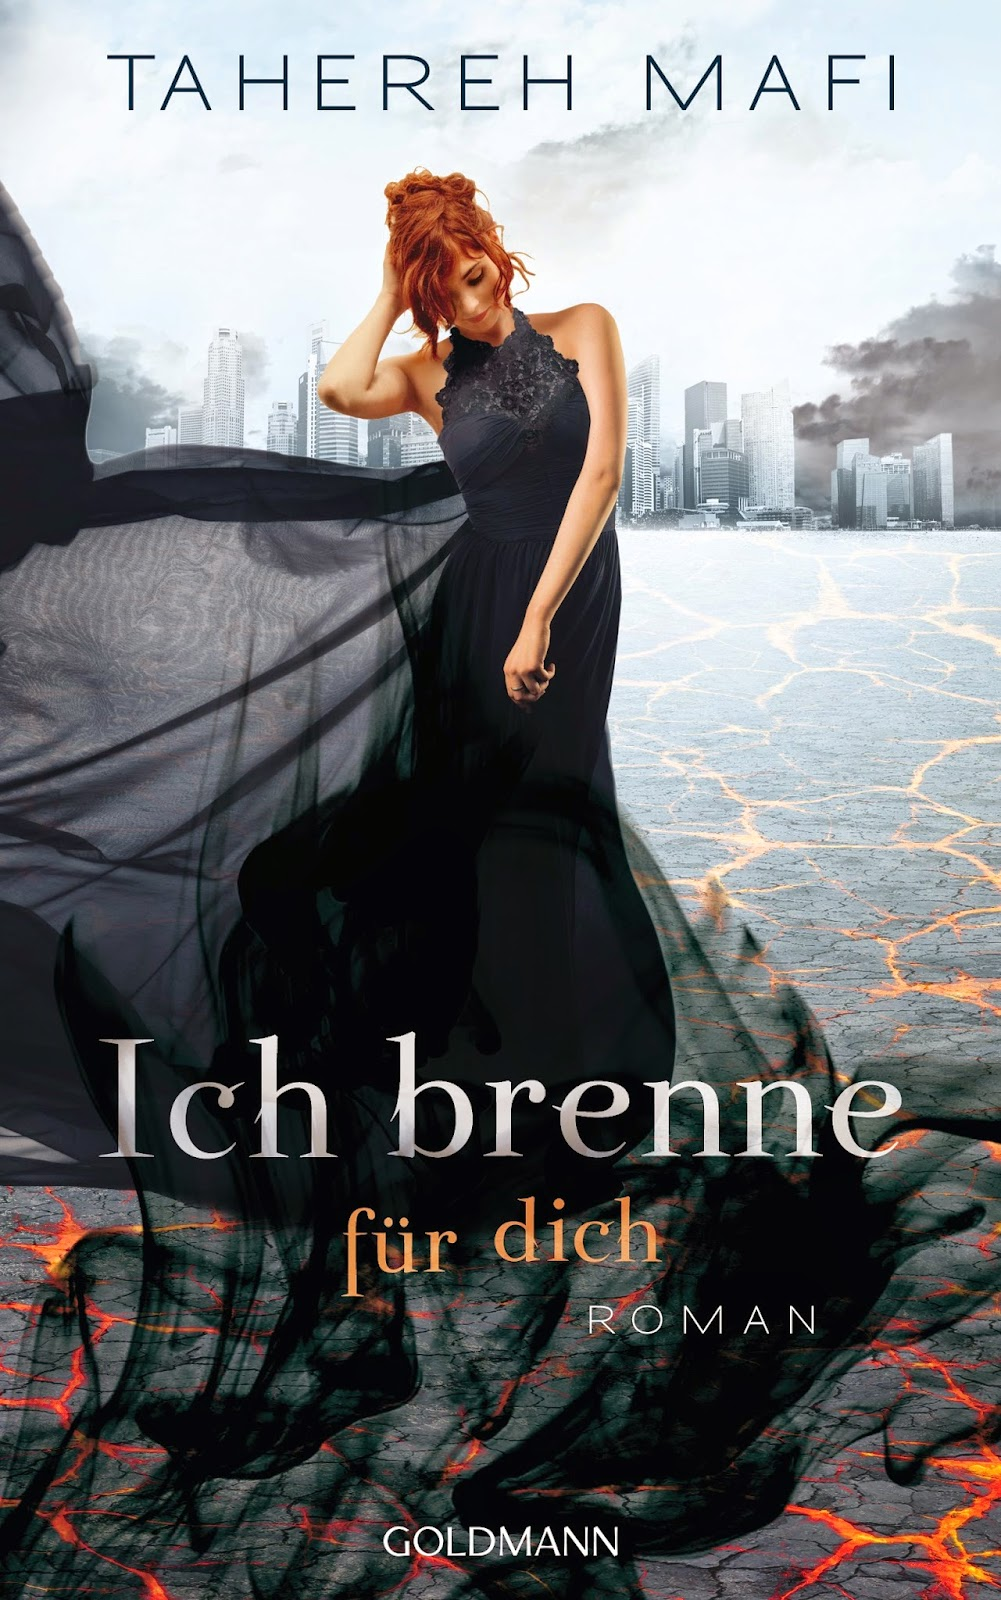 https://www.buchhaus-sternverlag.de/shop/action/productDetails/25255903/tahereh_mafi_ich_brenne_fuer_dich_3442313058.html?aUrl=90007403&searchId=117